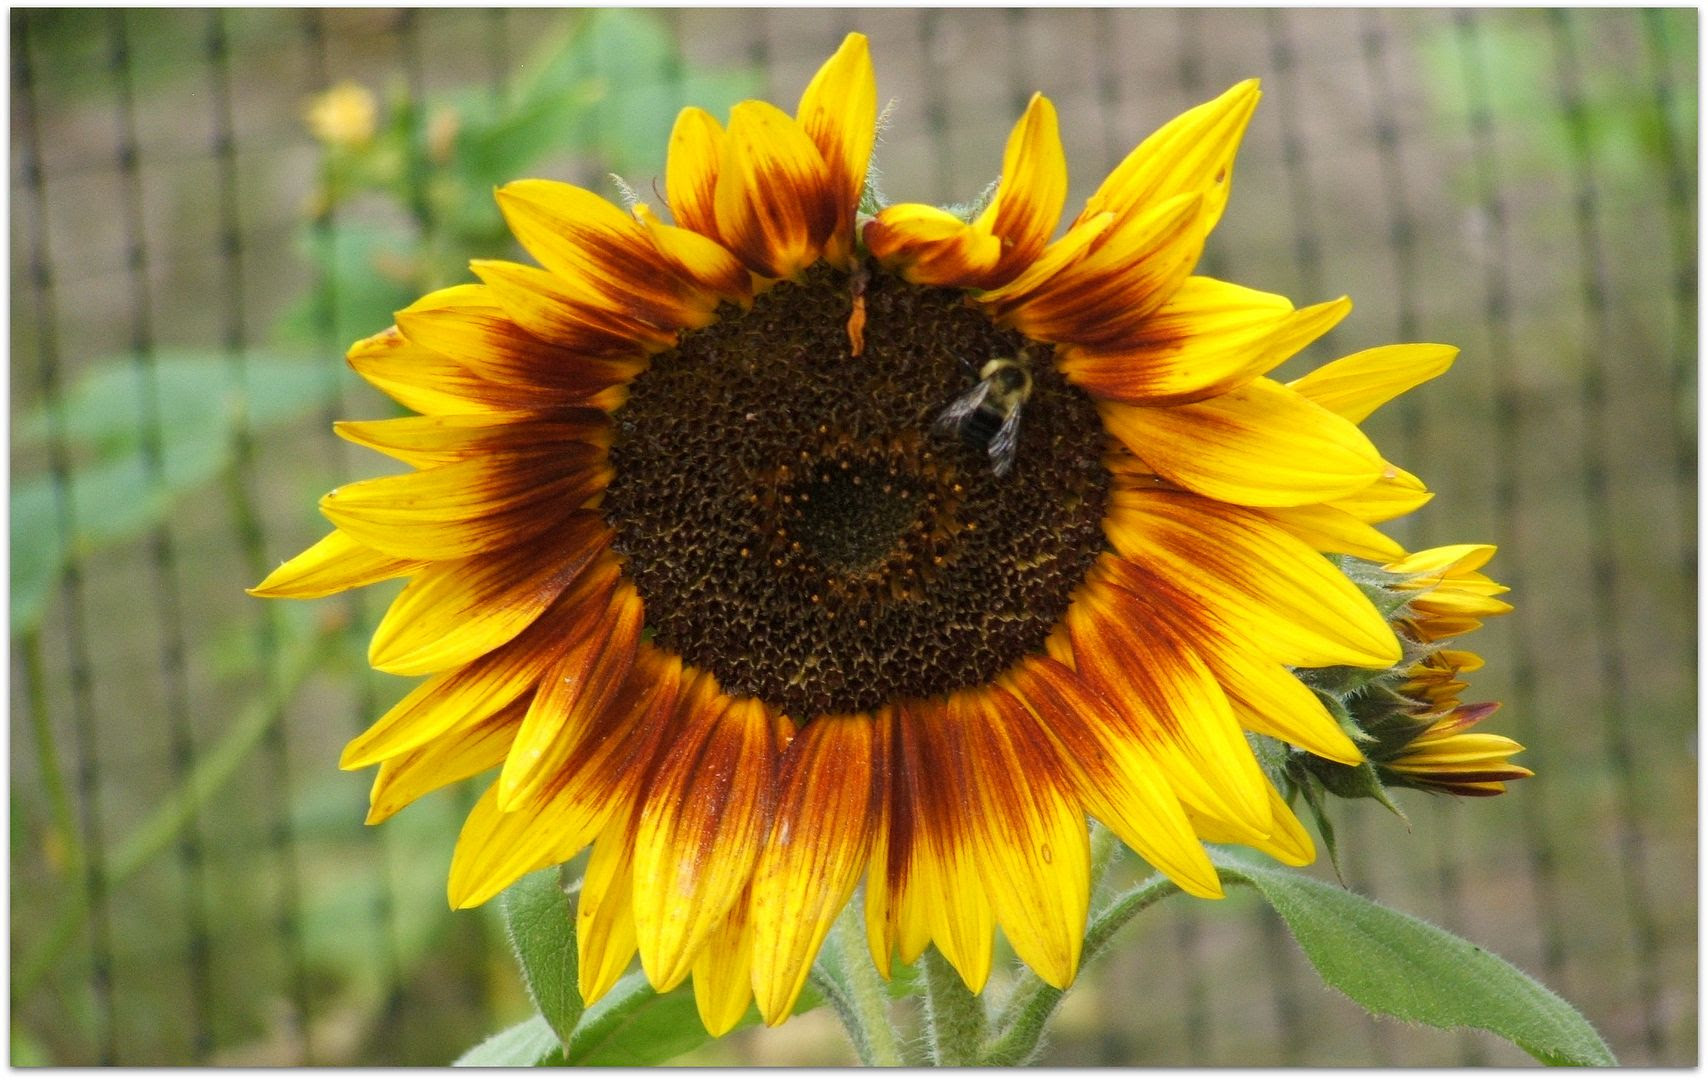 by Angie Ouellette-Tower for http://www.godsgrowinggarden.com/ photo DSCF9063_zpsh7tgykcw.jpg